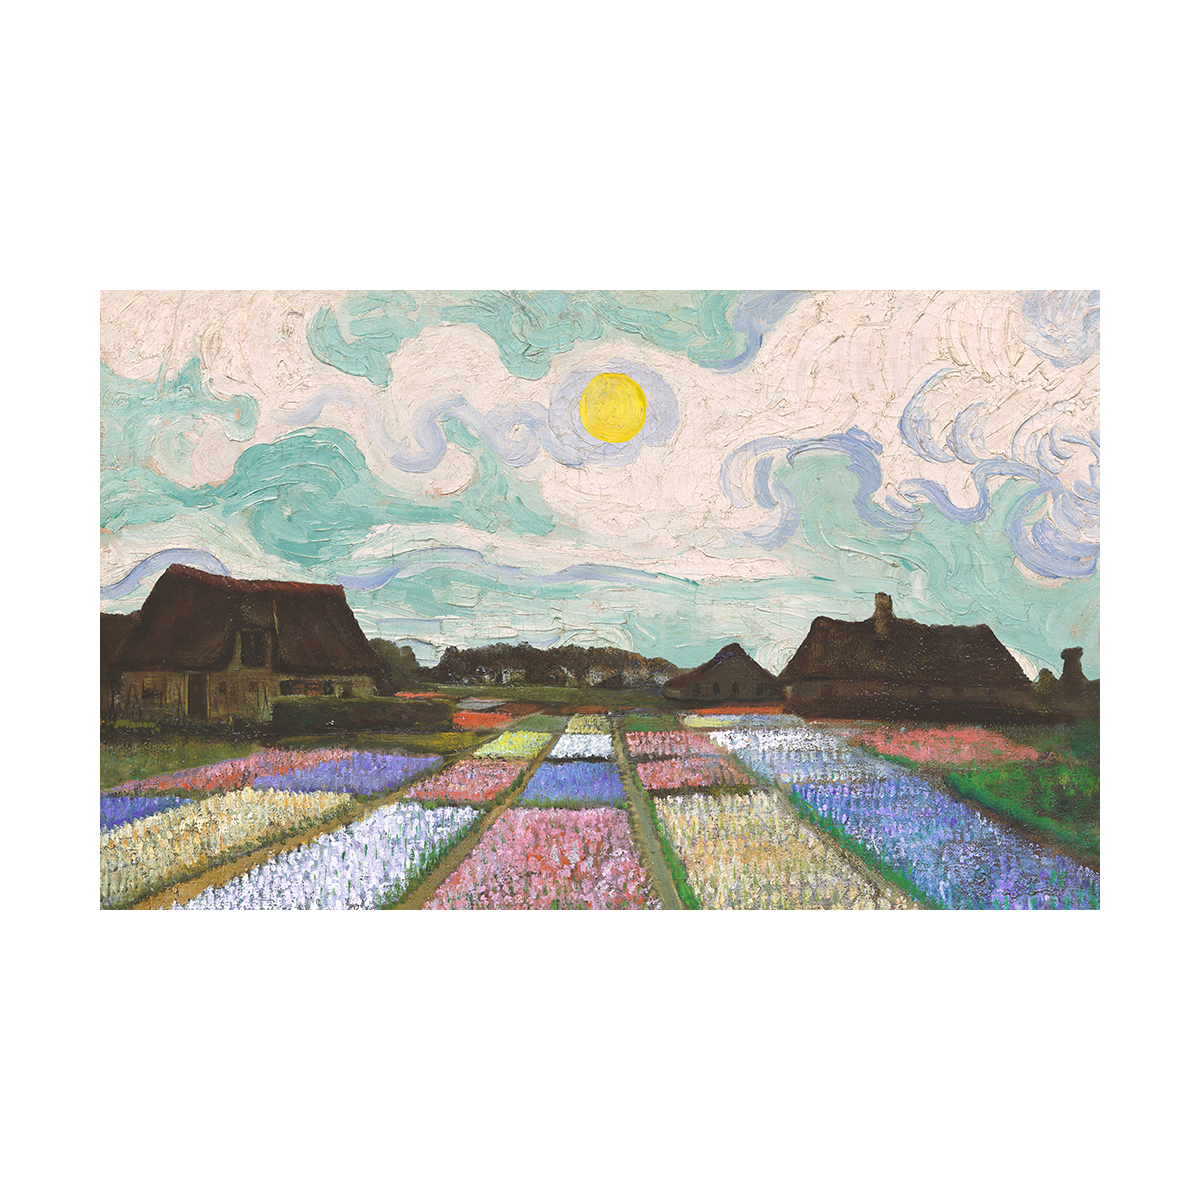 A painting of a beds of flowers in front of houses underneath a midday sun with twisting clouds